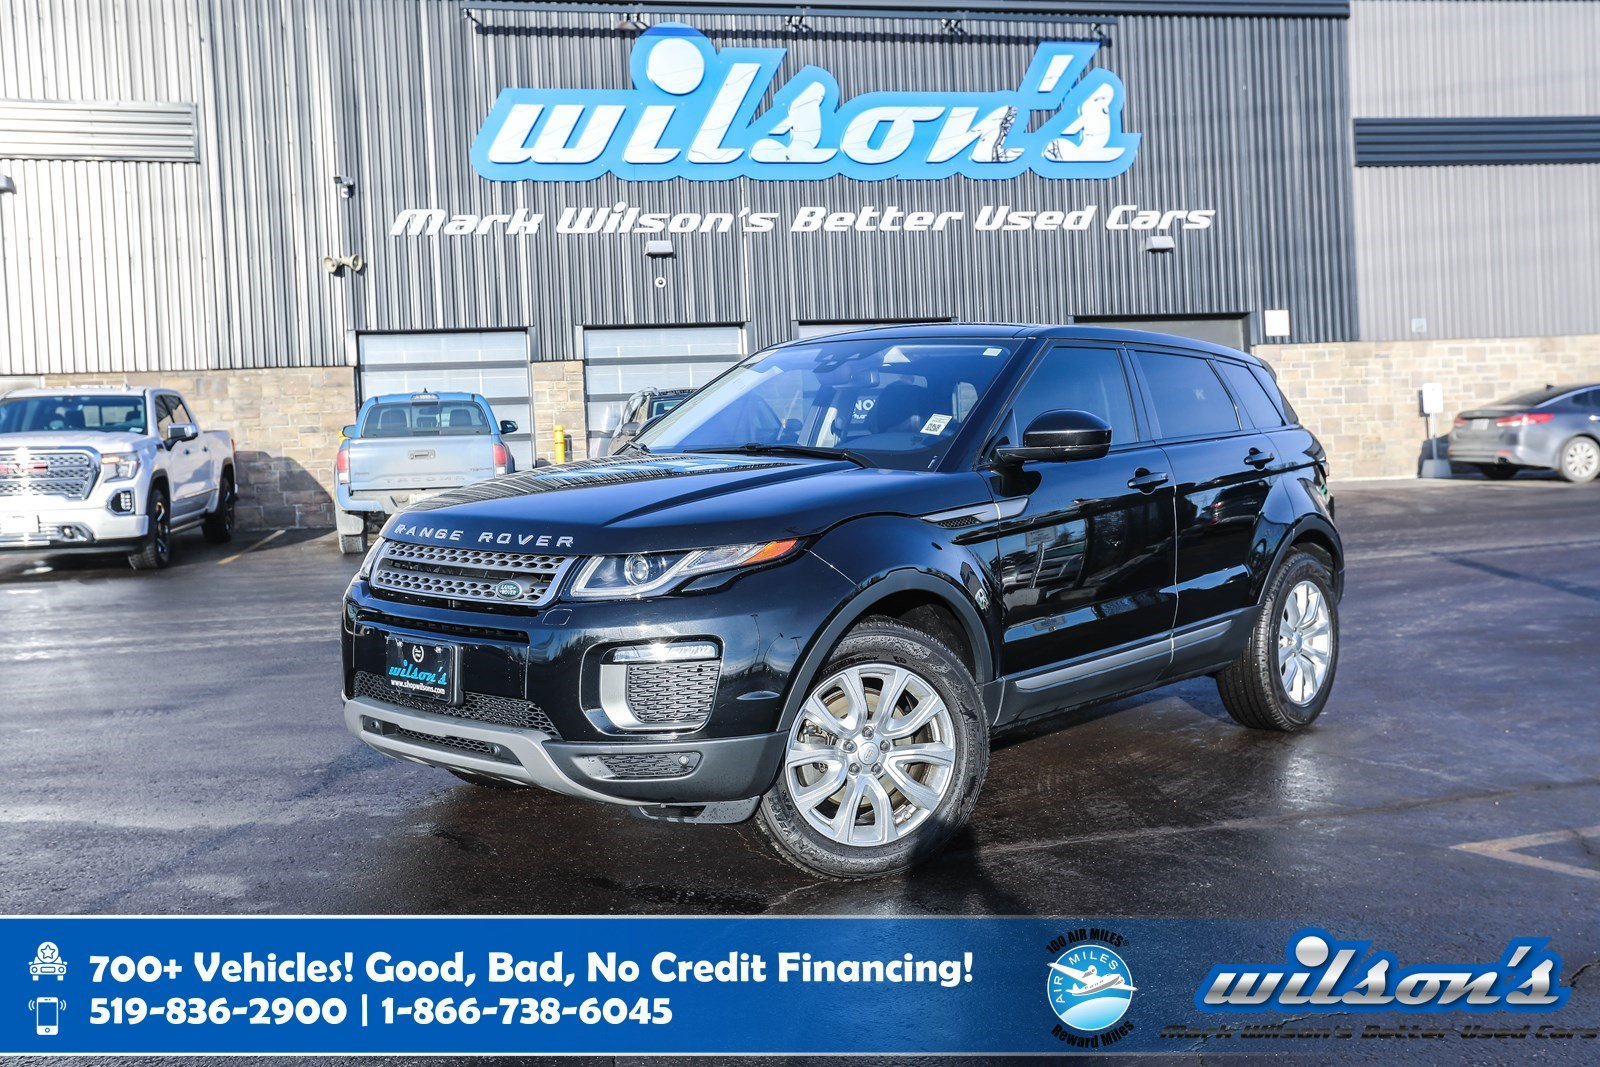 Certified Pre-Owned 2017 Land Rover Range Rover Evoque SE AWD, Navigation, Glass Roof, Leather, Rear Camera, Heated Steering, Bluetooth, and more!